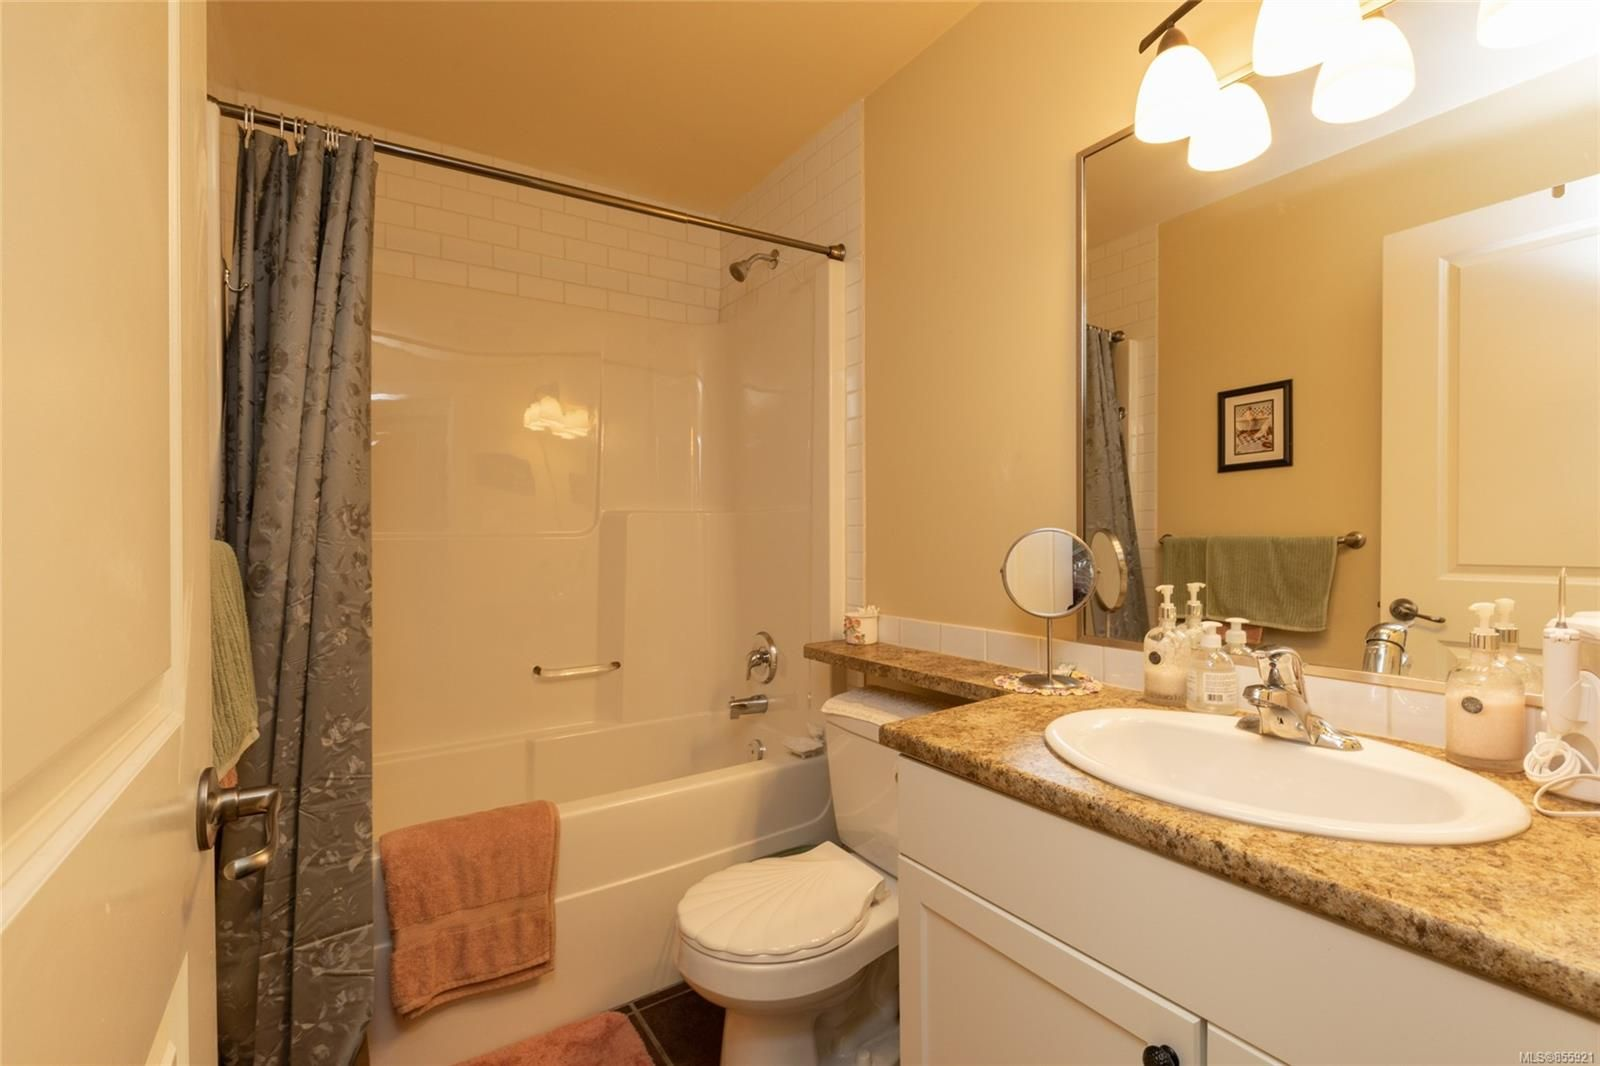 Photo 5: Photos: 206 1244 4TH Ave in : Du Ladysmith Row/Townhouse for sale (Duncan)  : MLS®# 855921